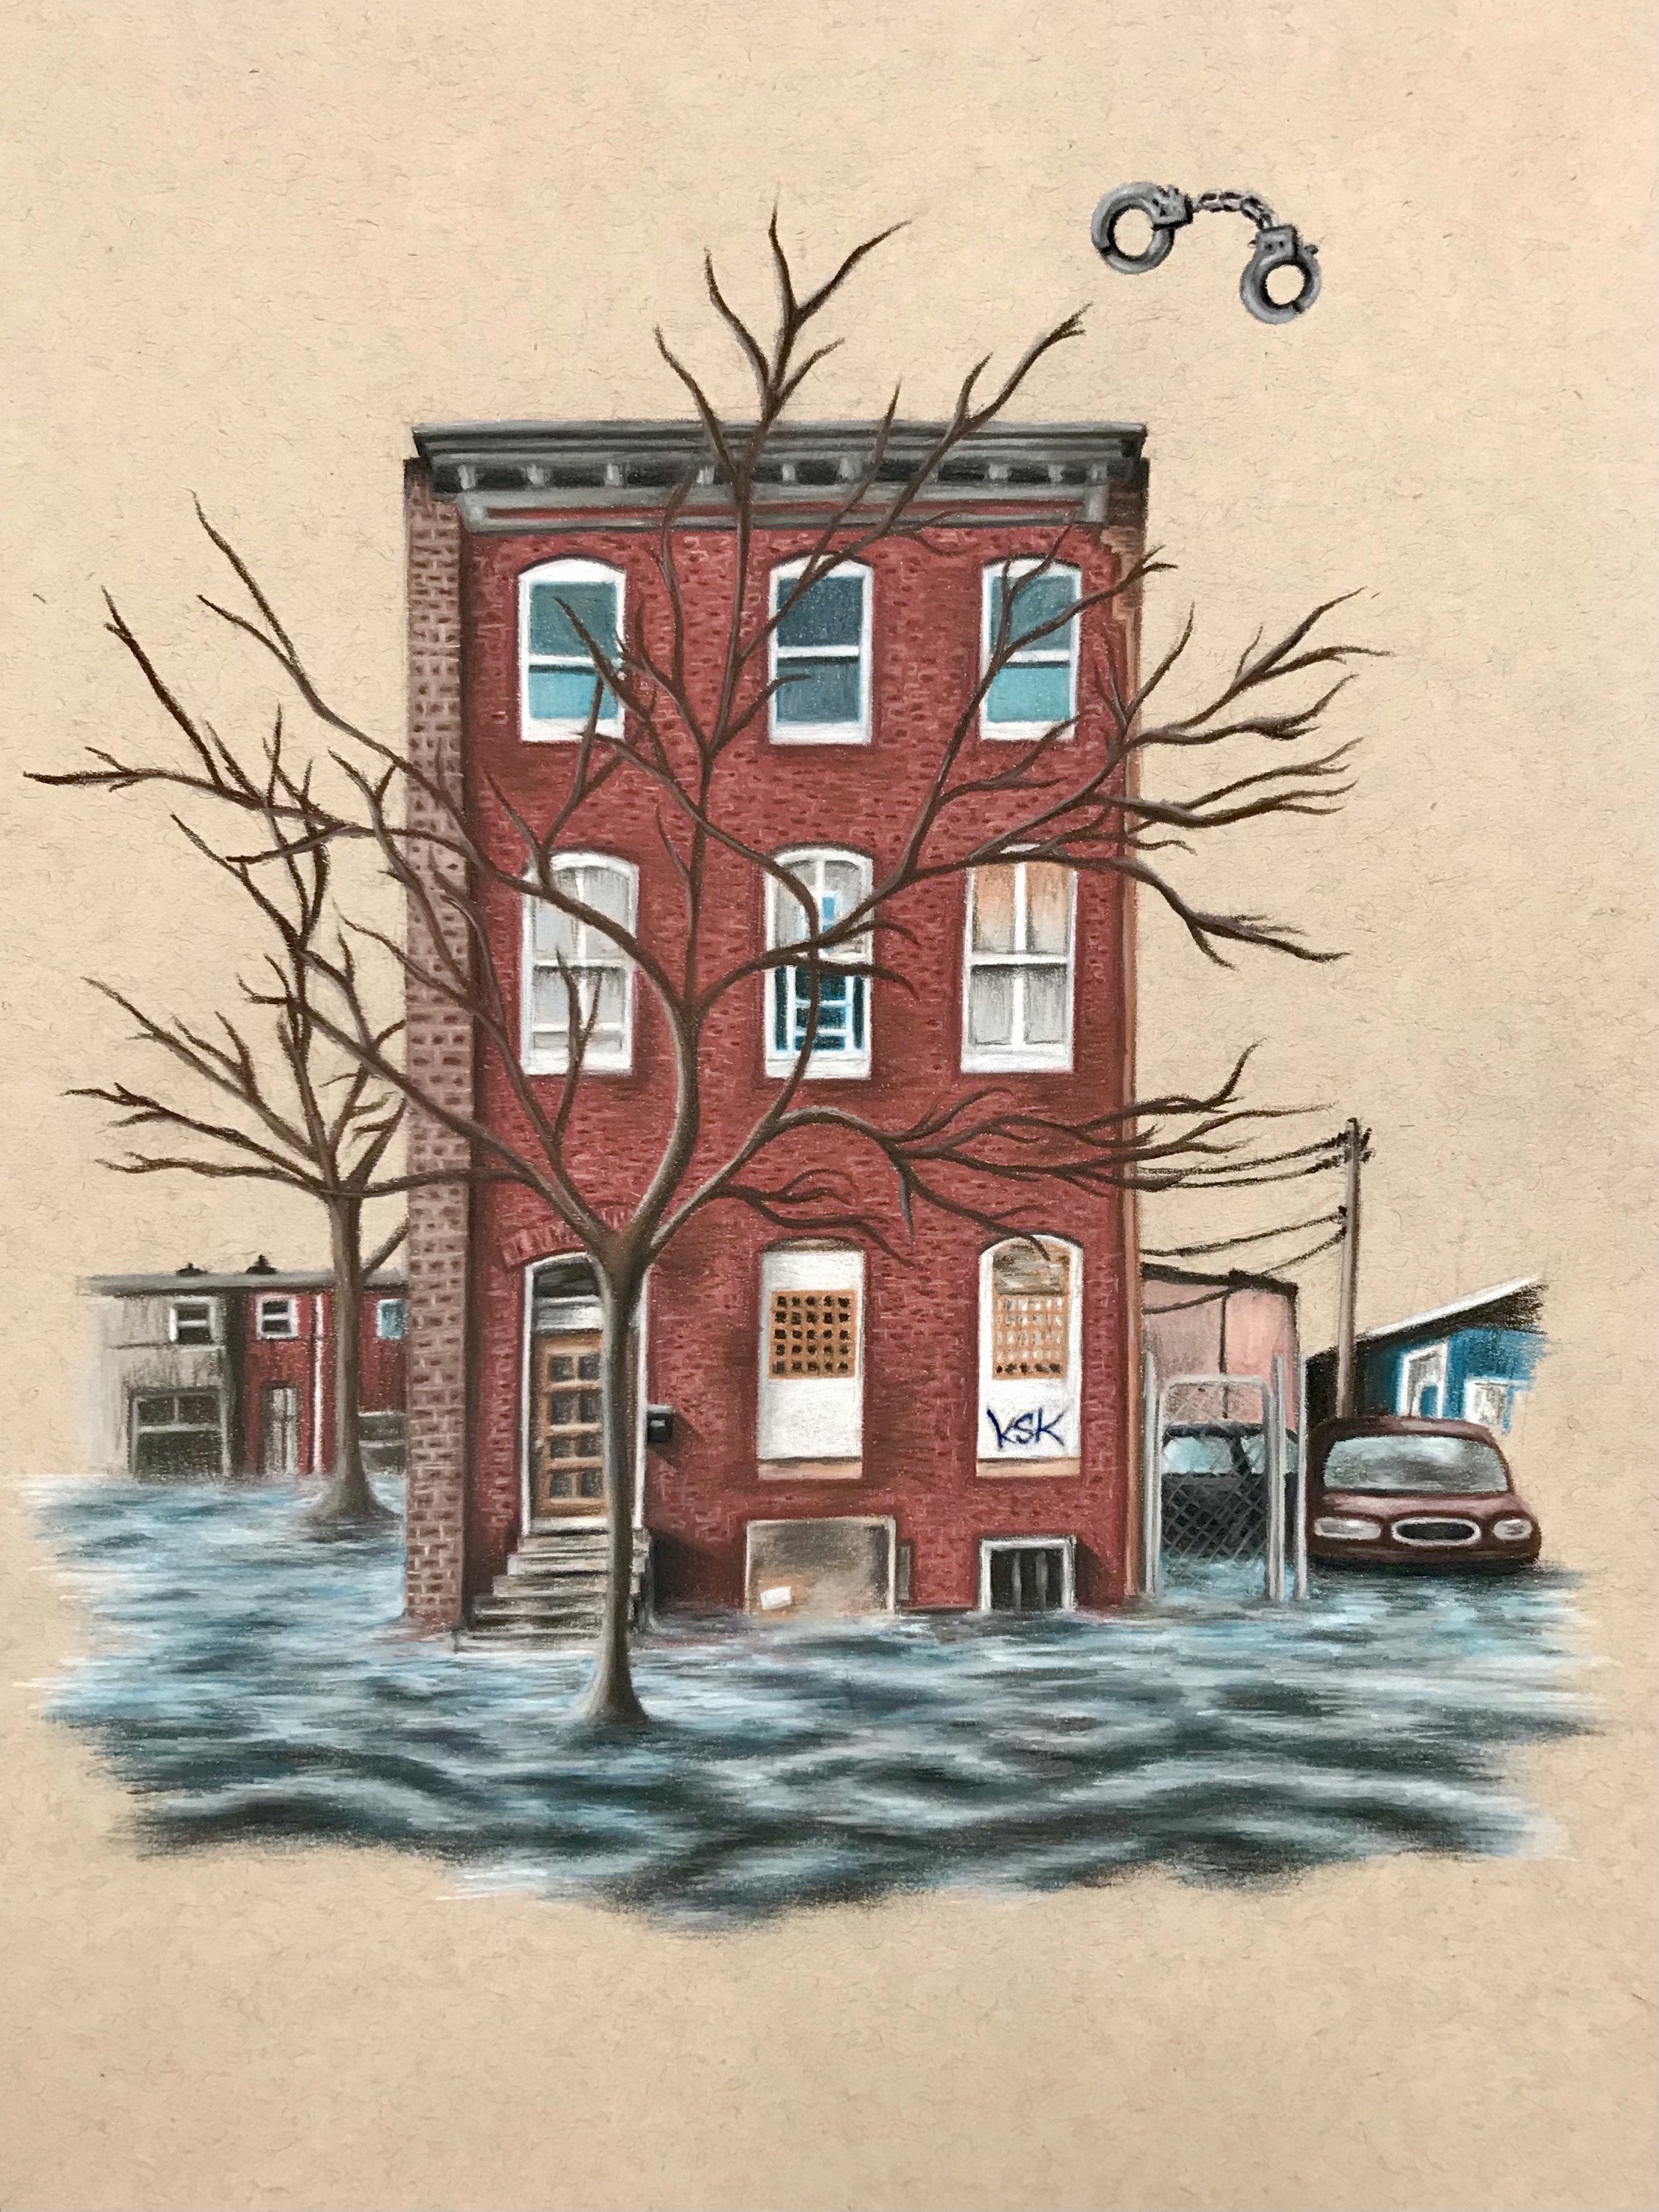 Baltimore-styled row house submerged in water with a pair of handcuffs off to the top right of the image.